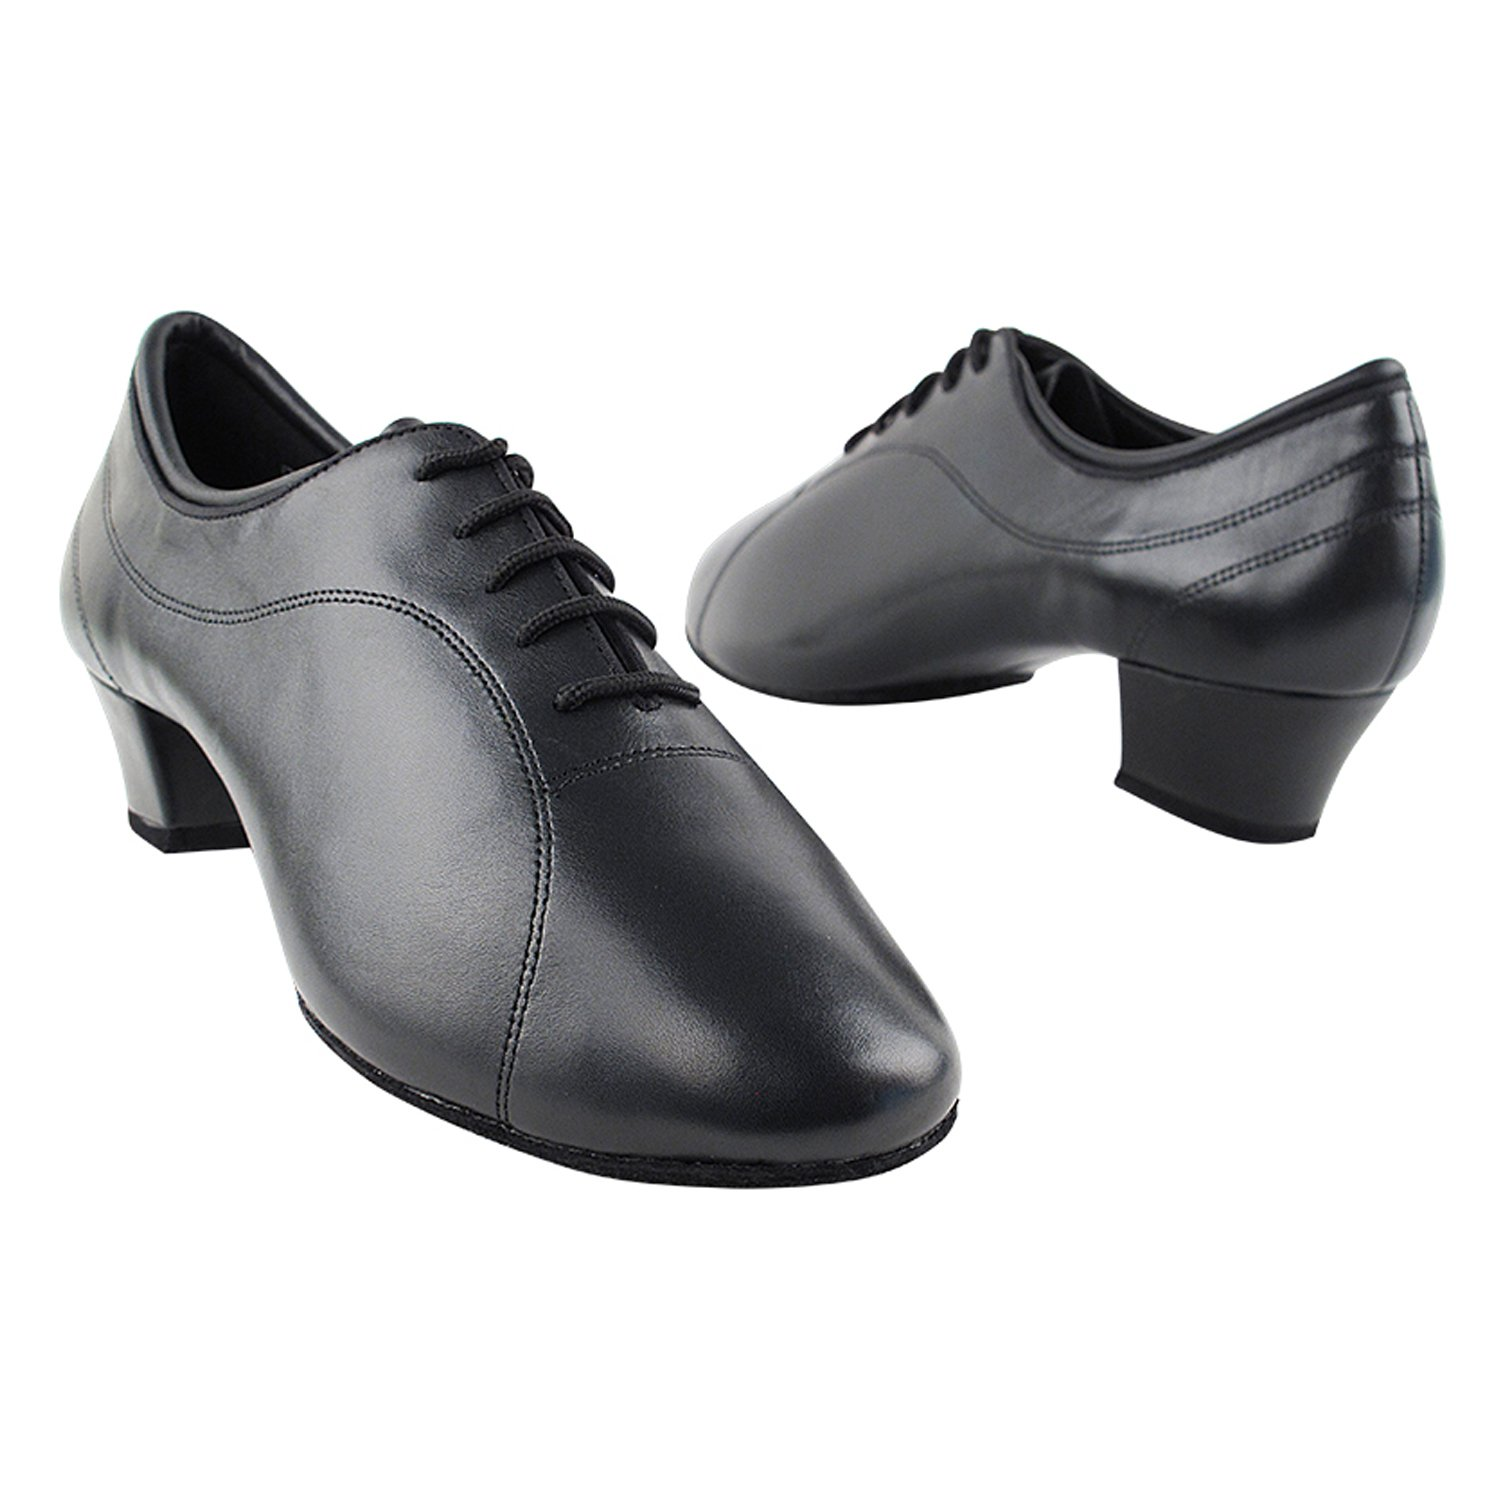 50 Shades Mens 1.5 High Heel Dance Dress Shoes Ballroom Salsa Swing Practice Casual VF Men 1.5